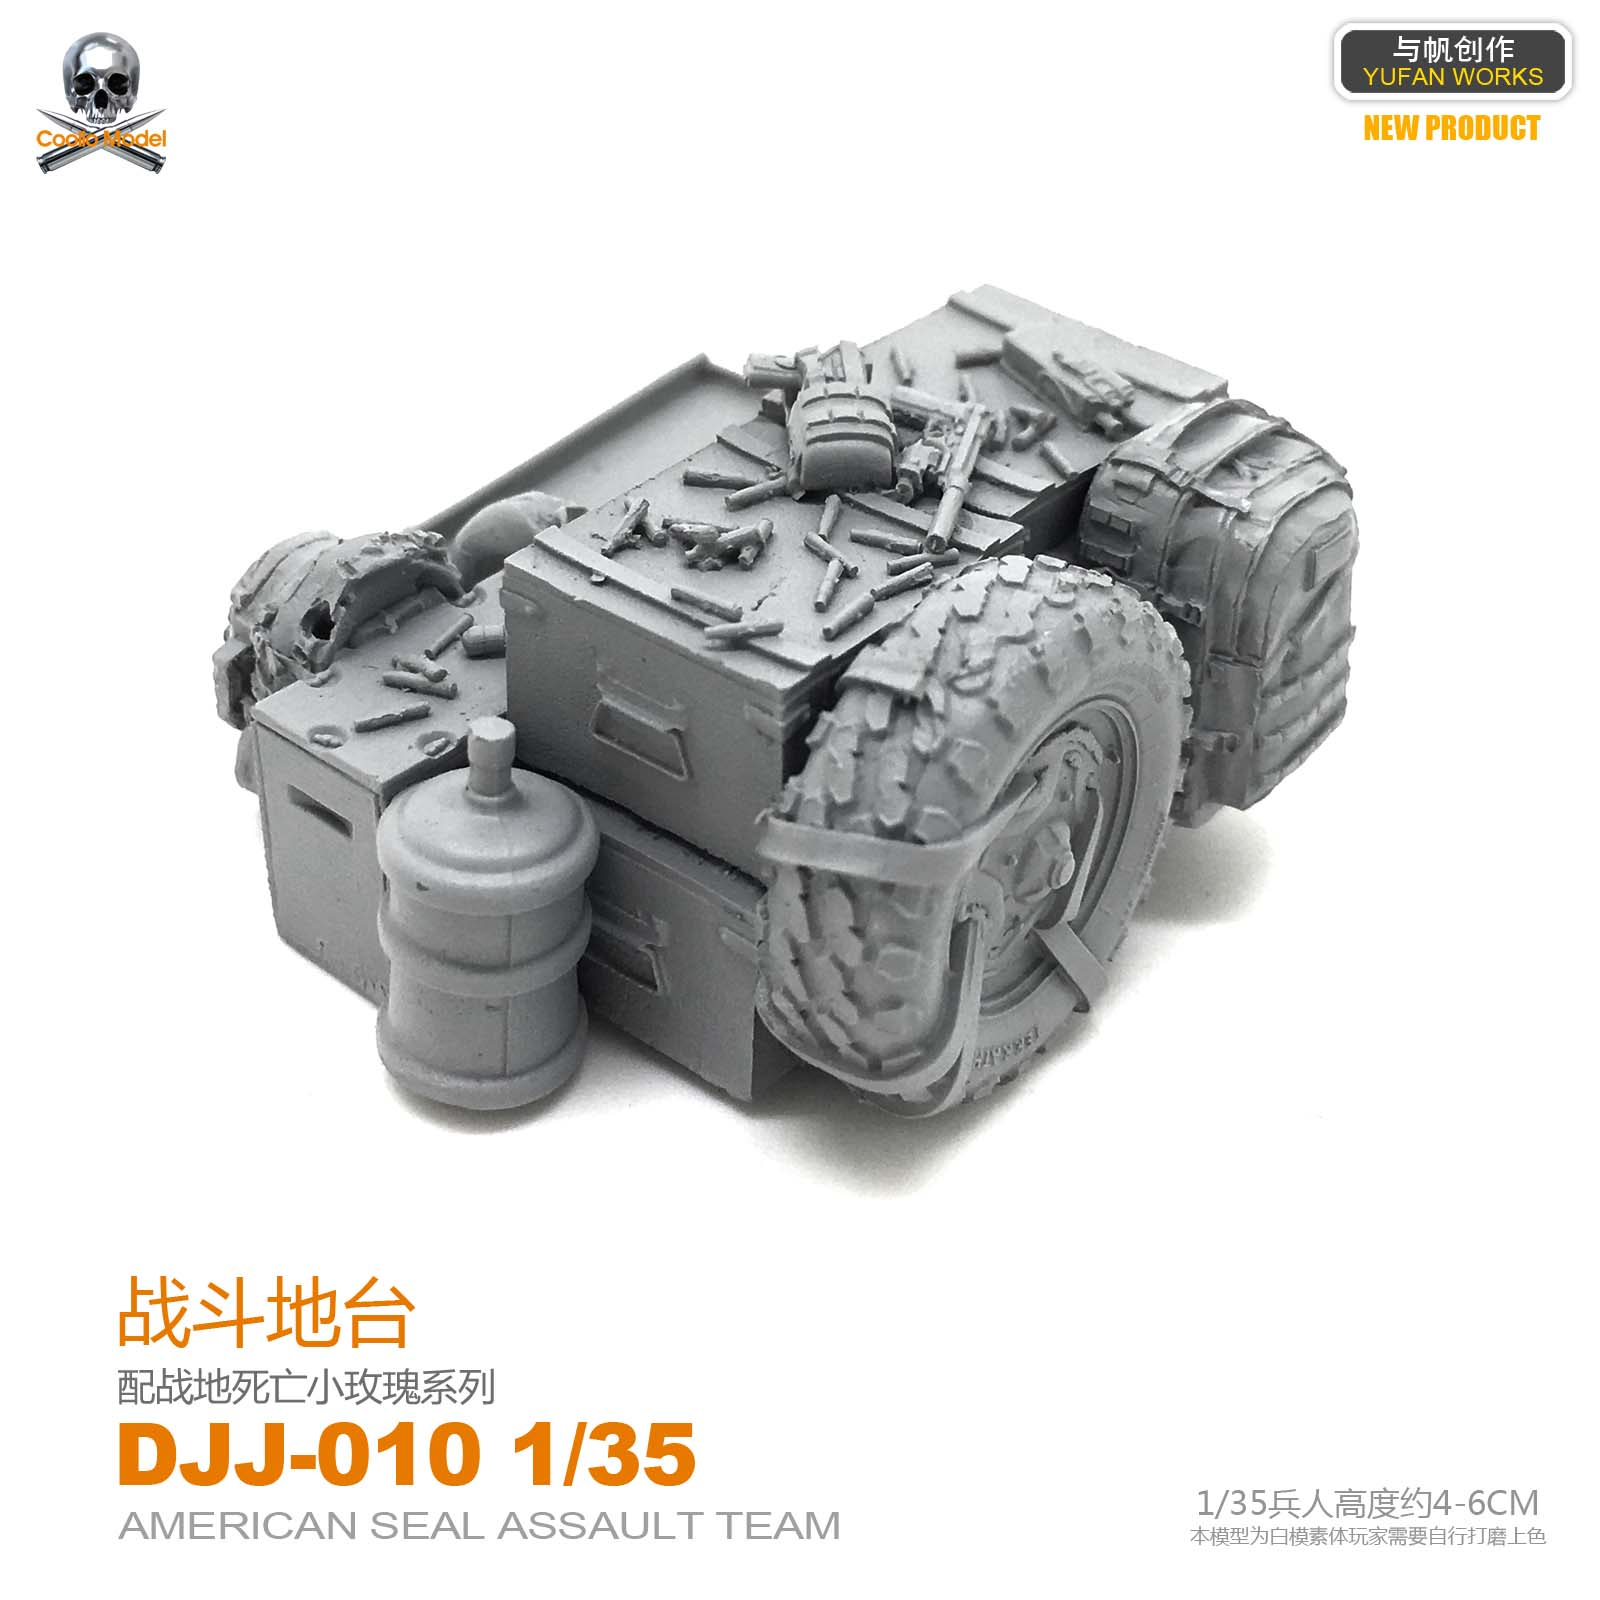 Yufan Model Original 1/35 Resin Platform  With Sail Play DJJ-10